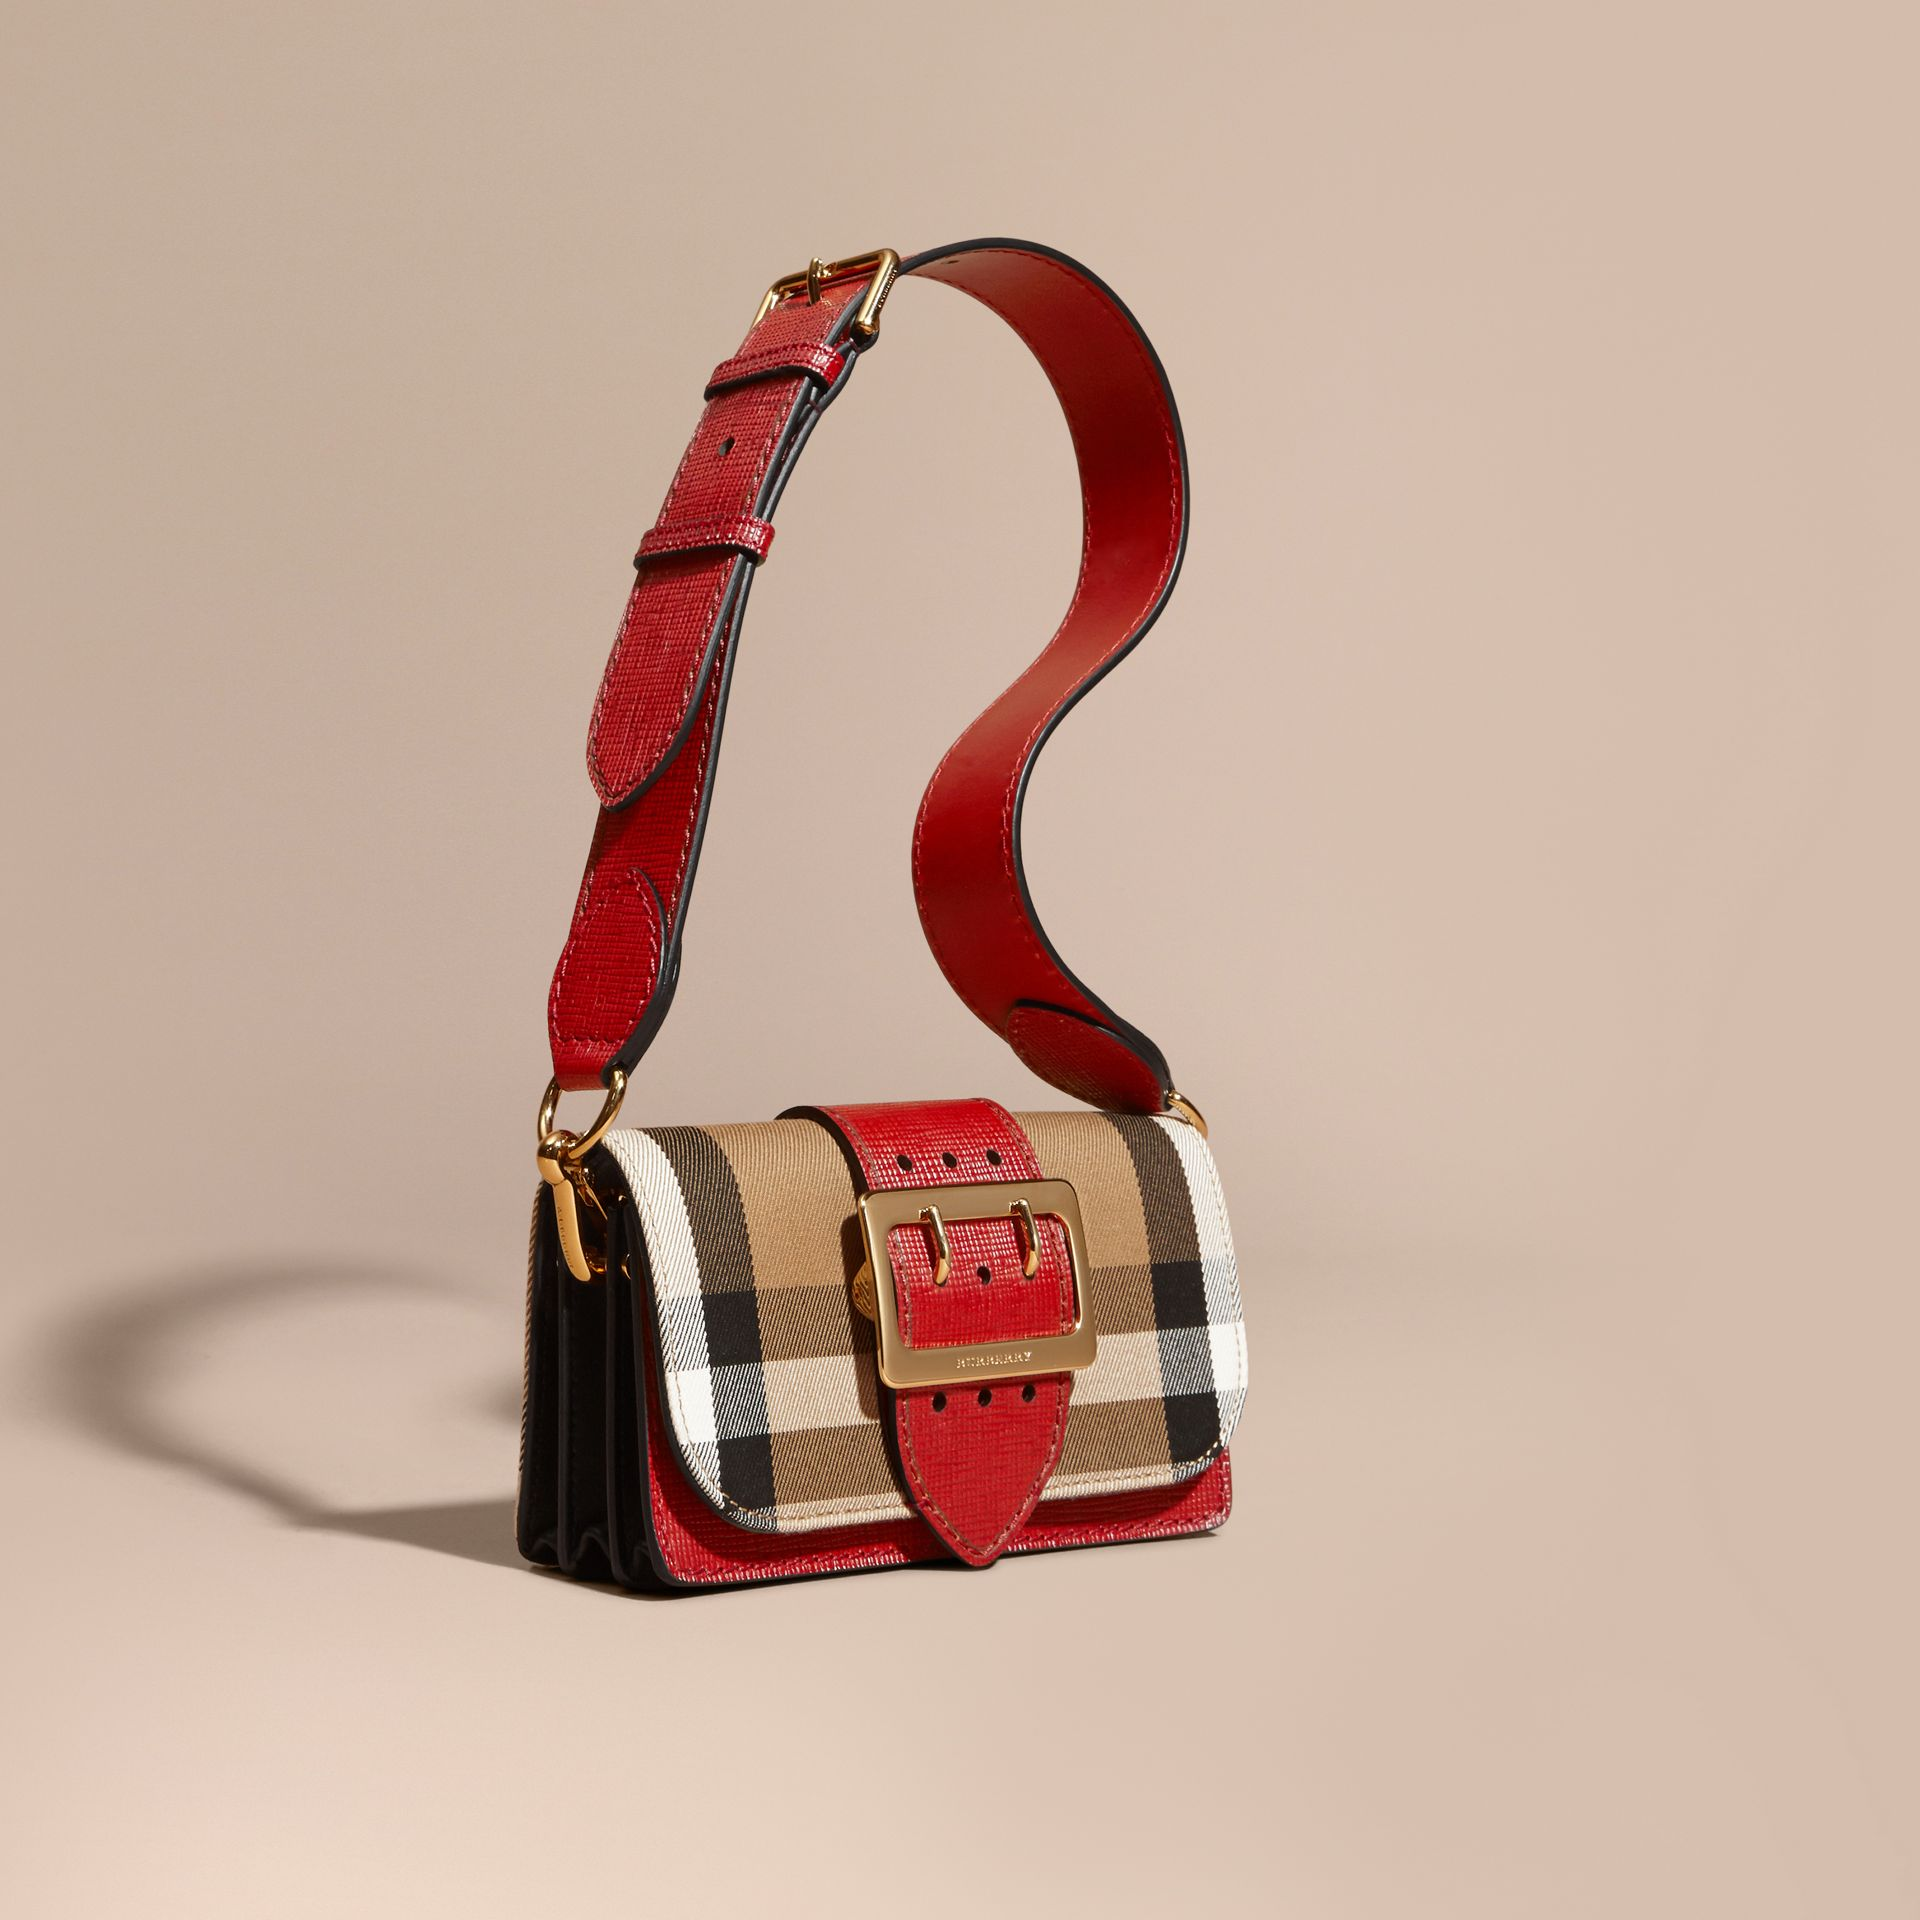 The Small Buckle Bag in House Check and Leather in Military Red/military Red - Women | Burberry United States - gallery image 8